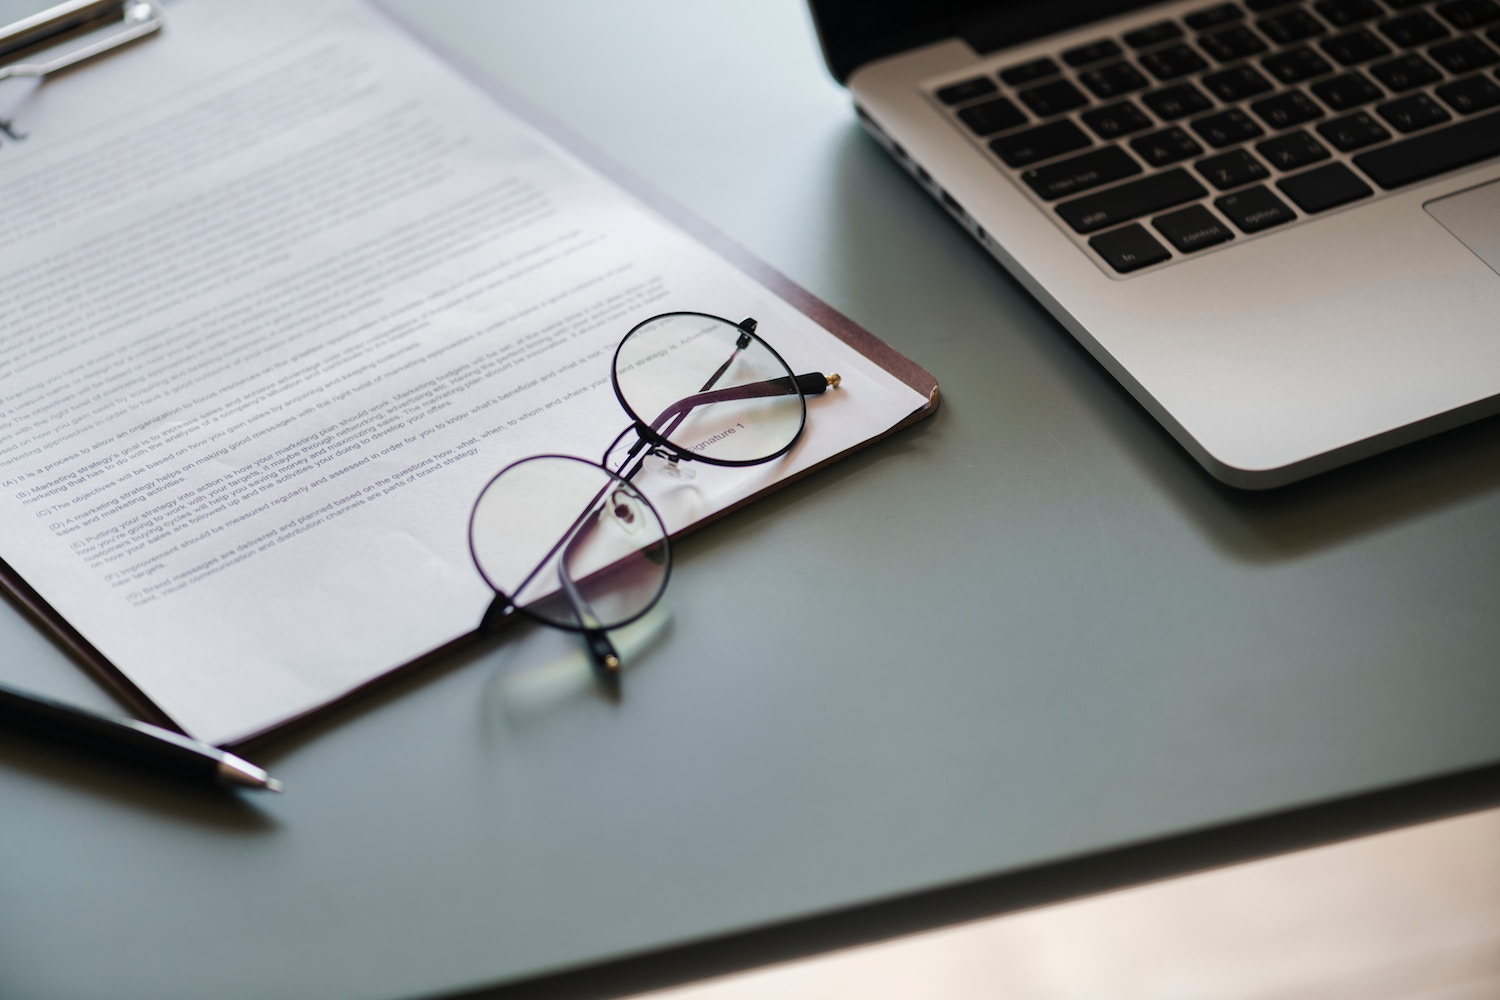 Round eyeglasses on top of business documents with a pen and laptop nearby.